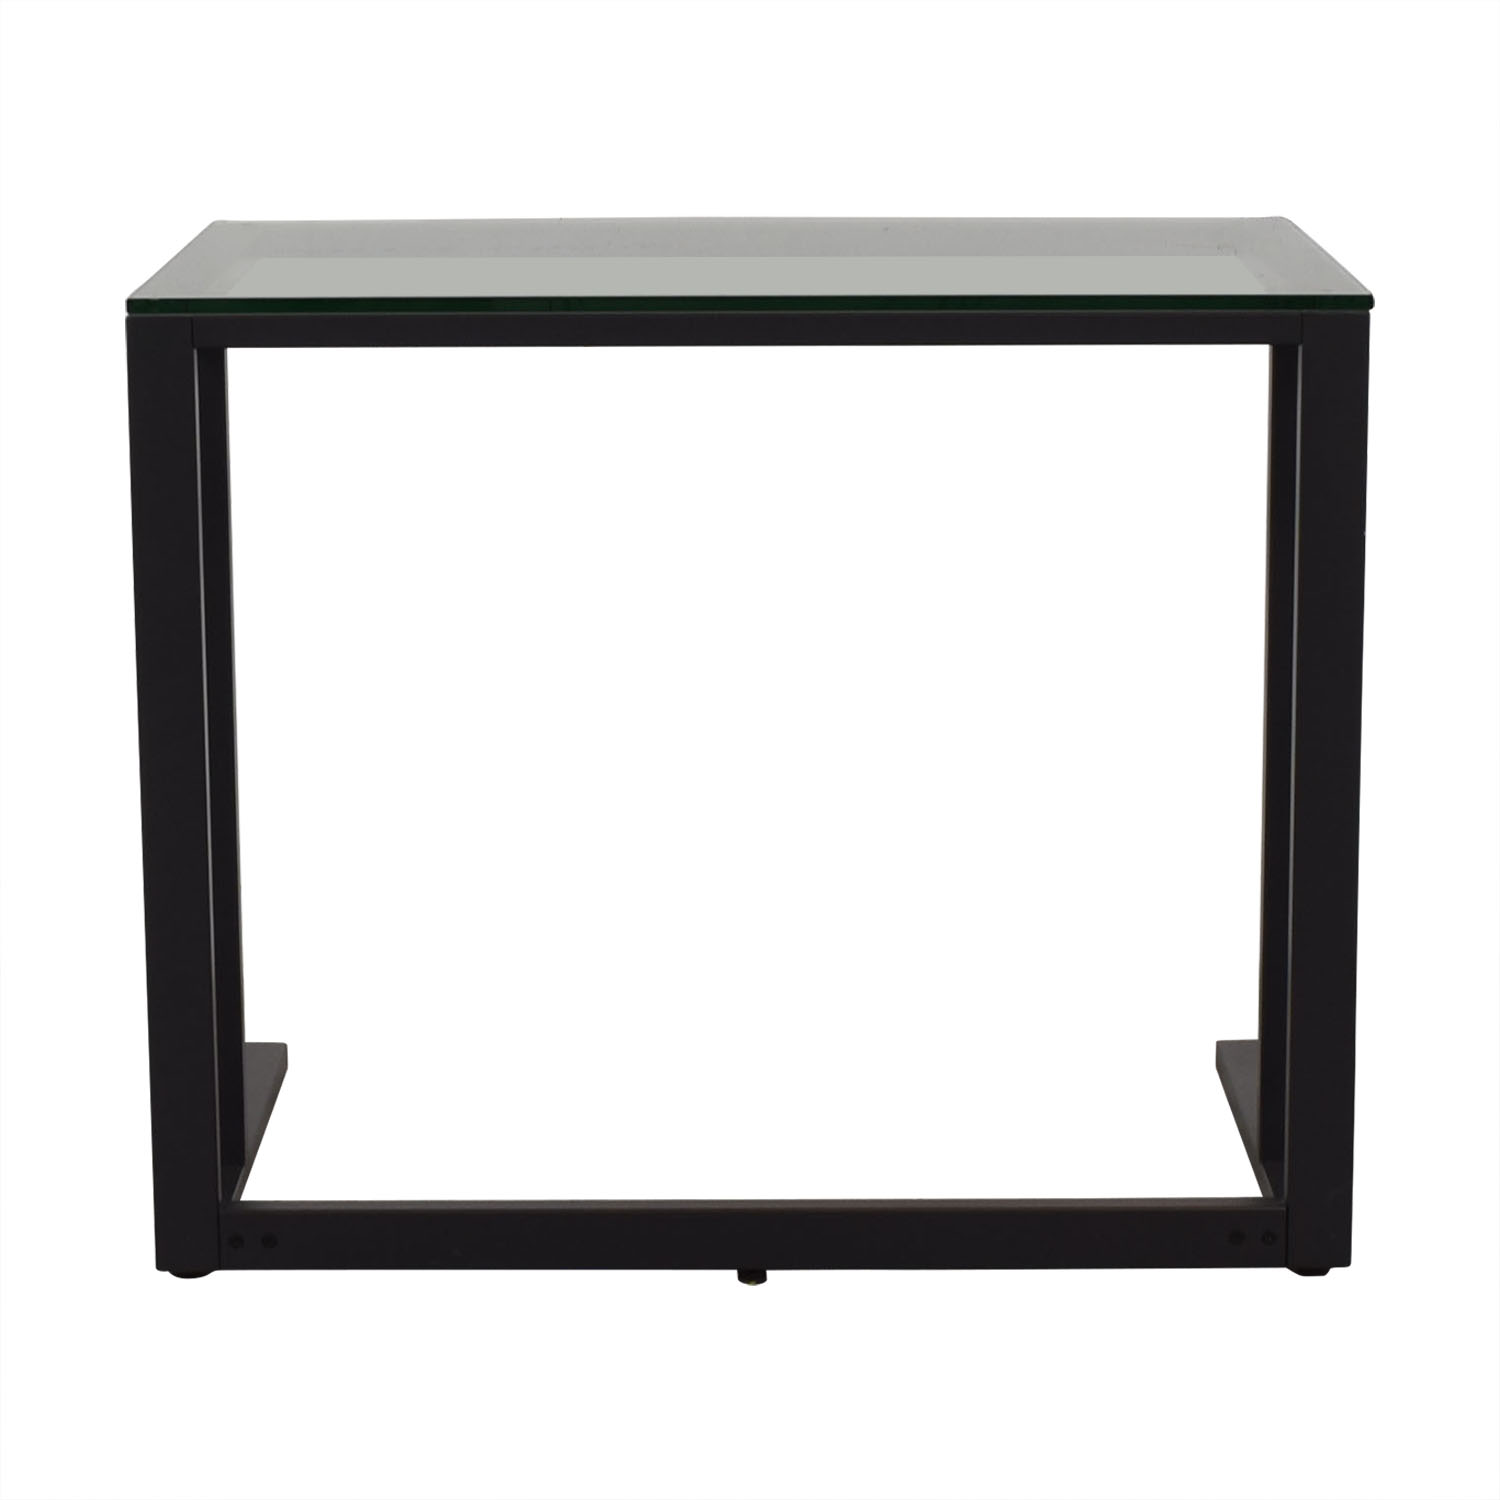 buy Crate & Barrel Glass Top Desk Crate & Barrel